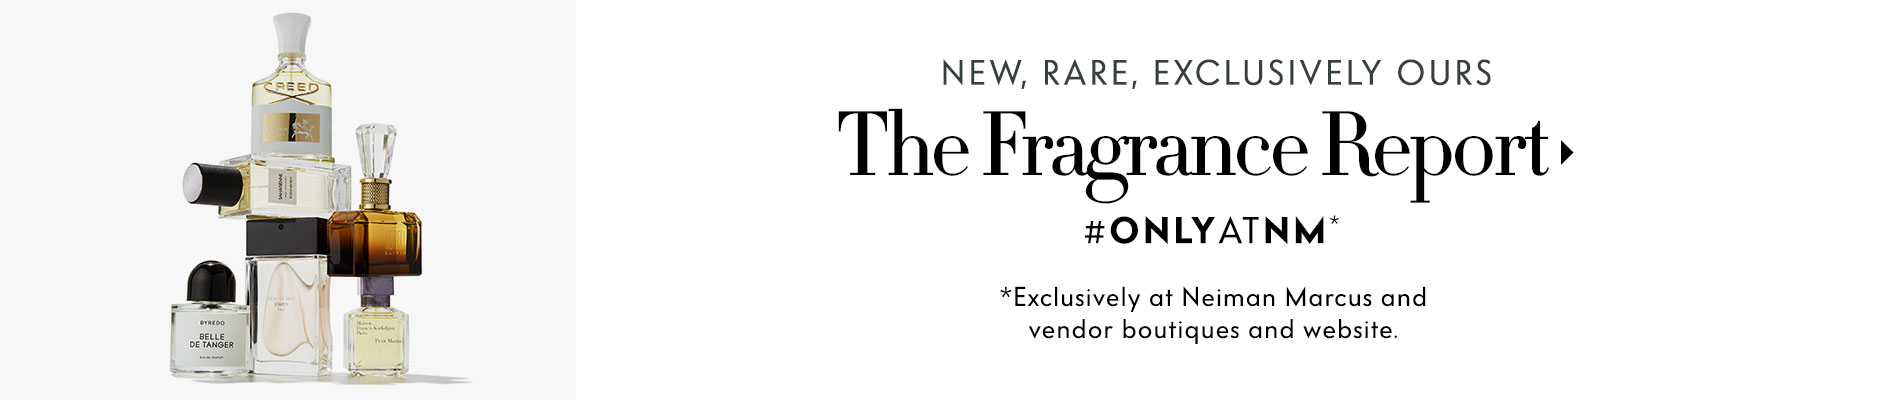 New, Rare, Exclusively Ours: The Fragrance Report - #onlyatNM